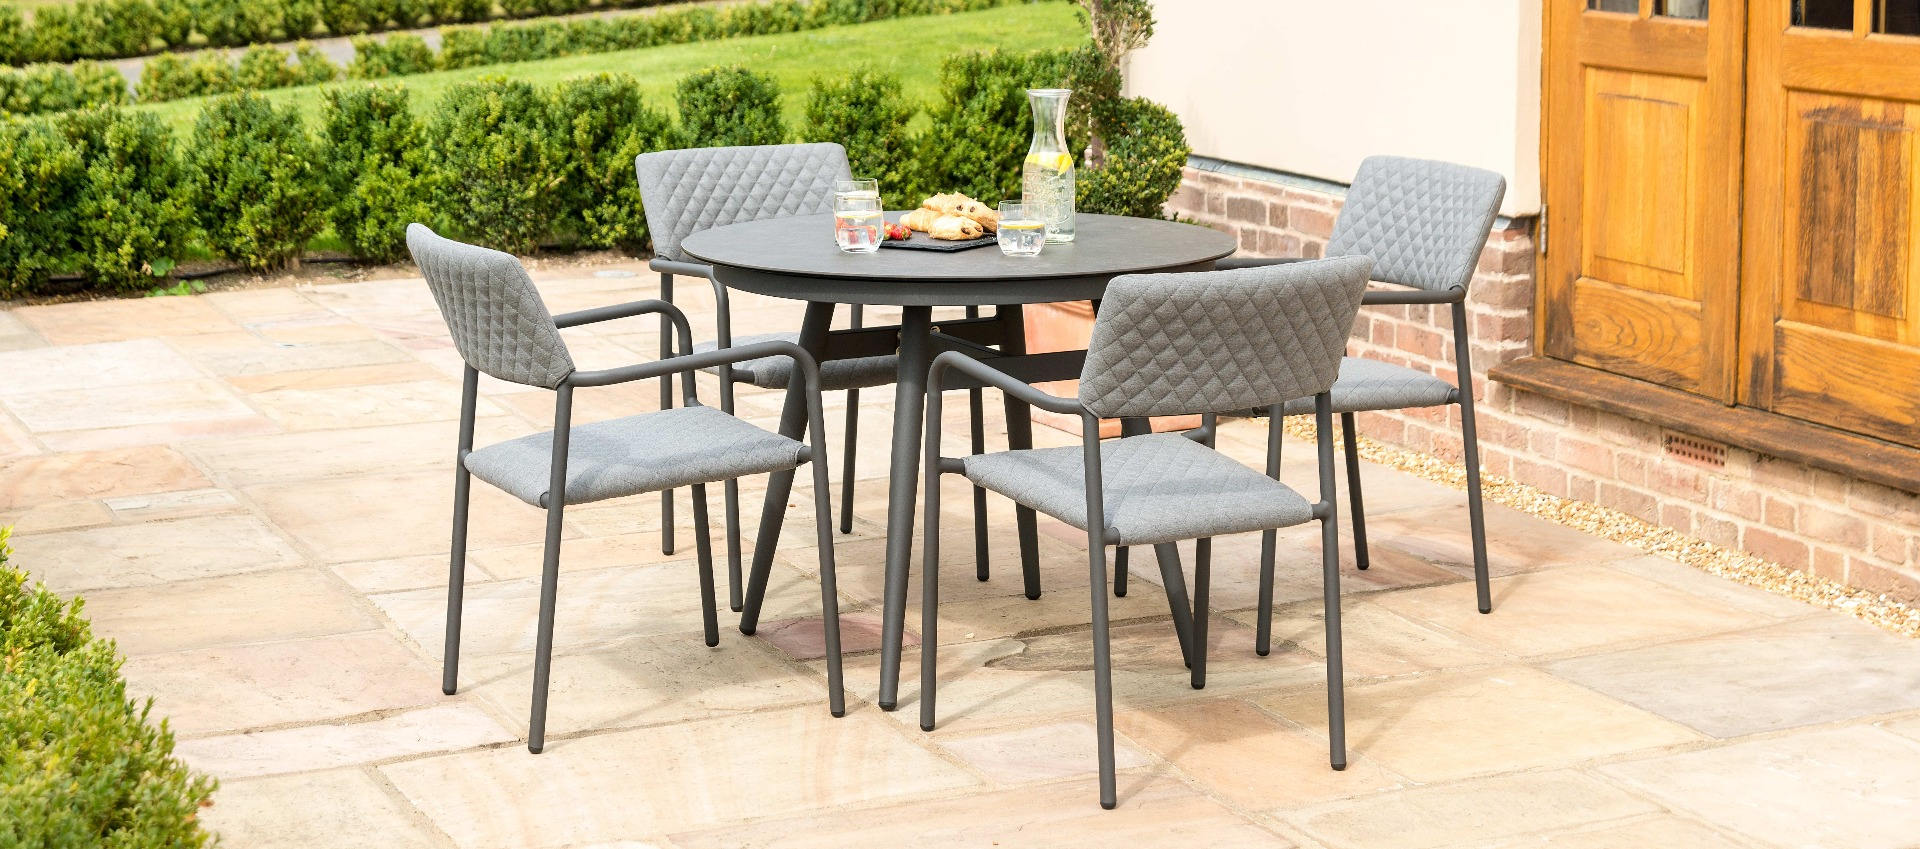 Maze Lounge - Outdoor Fabric Bliss 4 Seat Round Dining Set - Flanelle